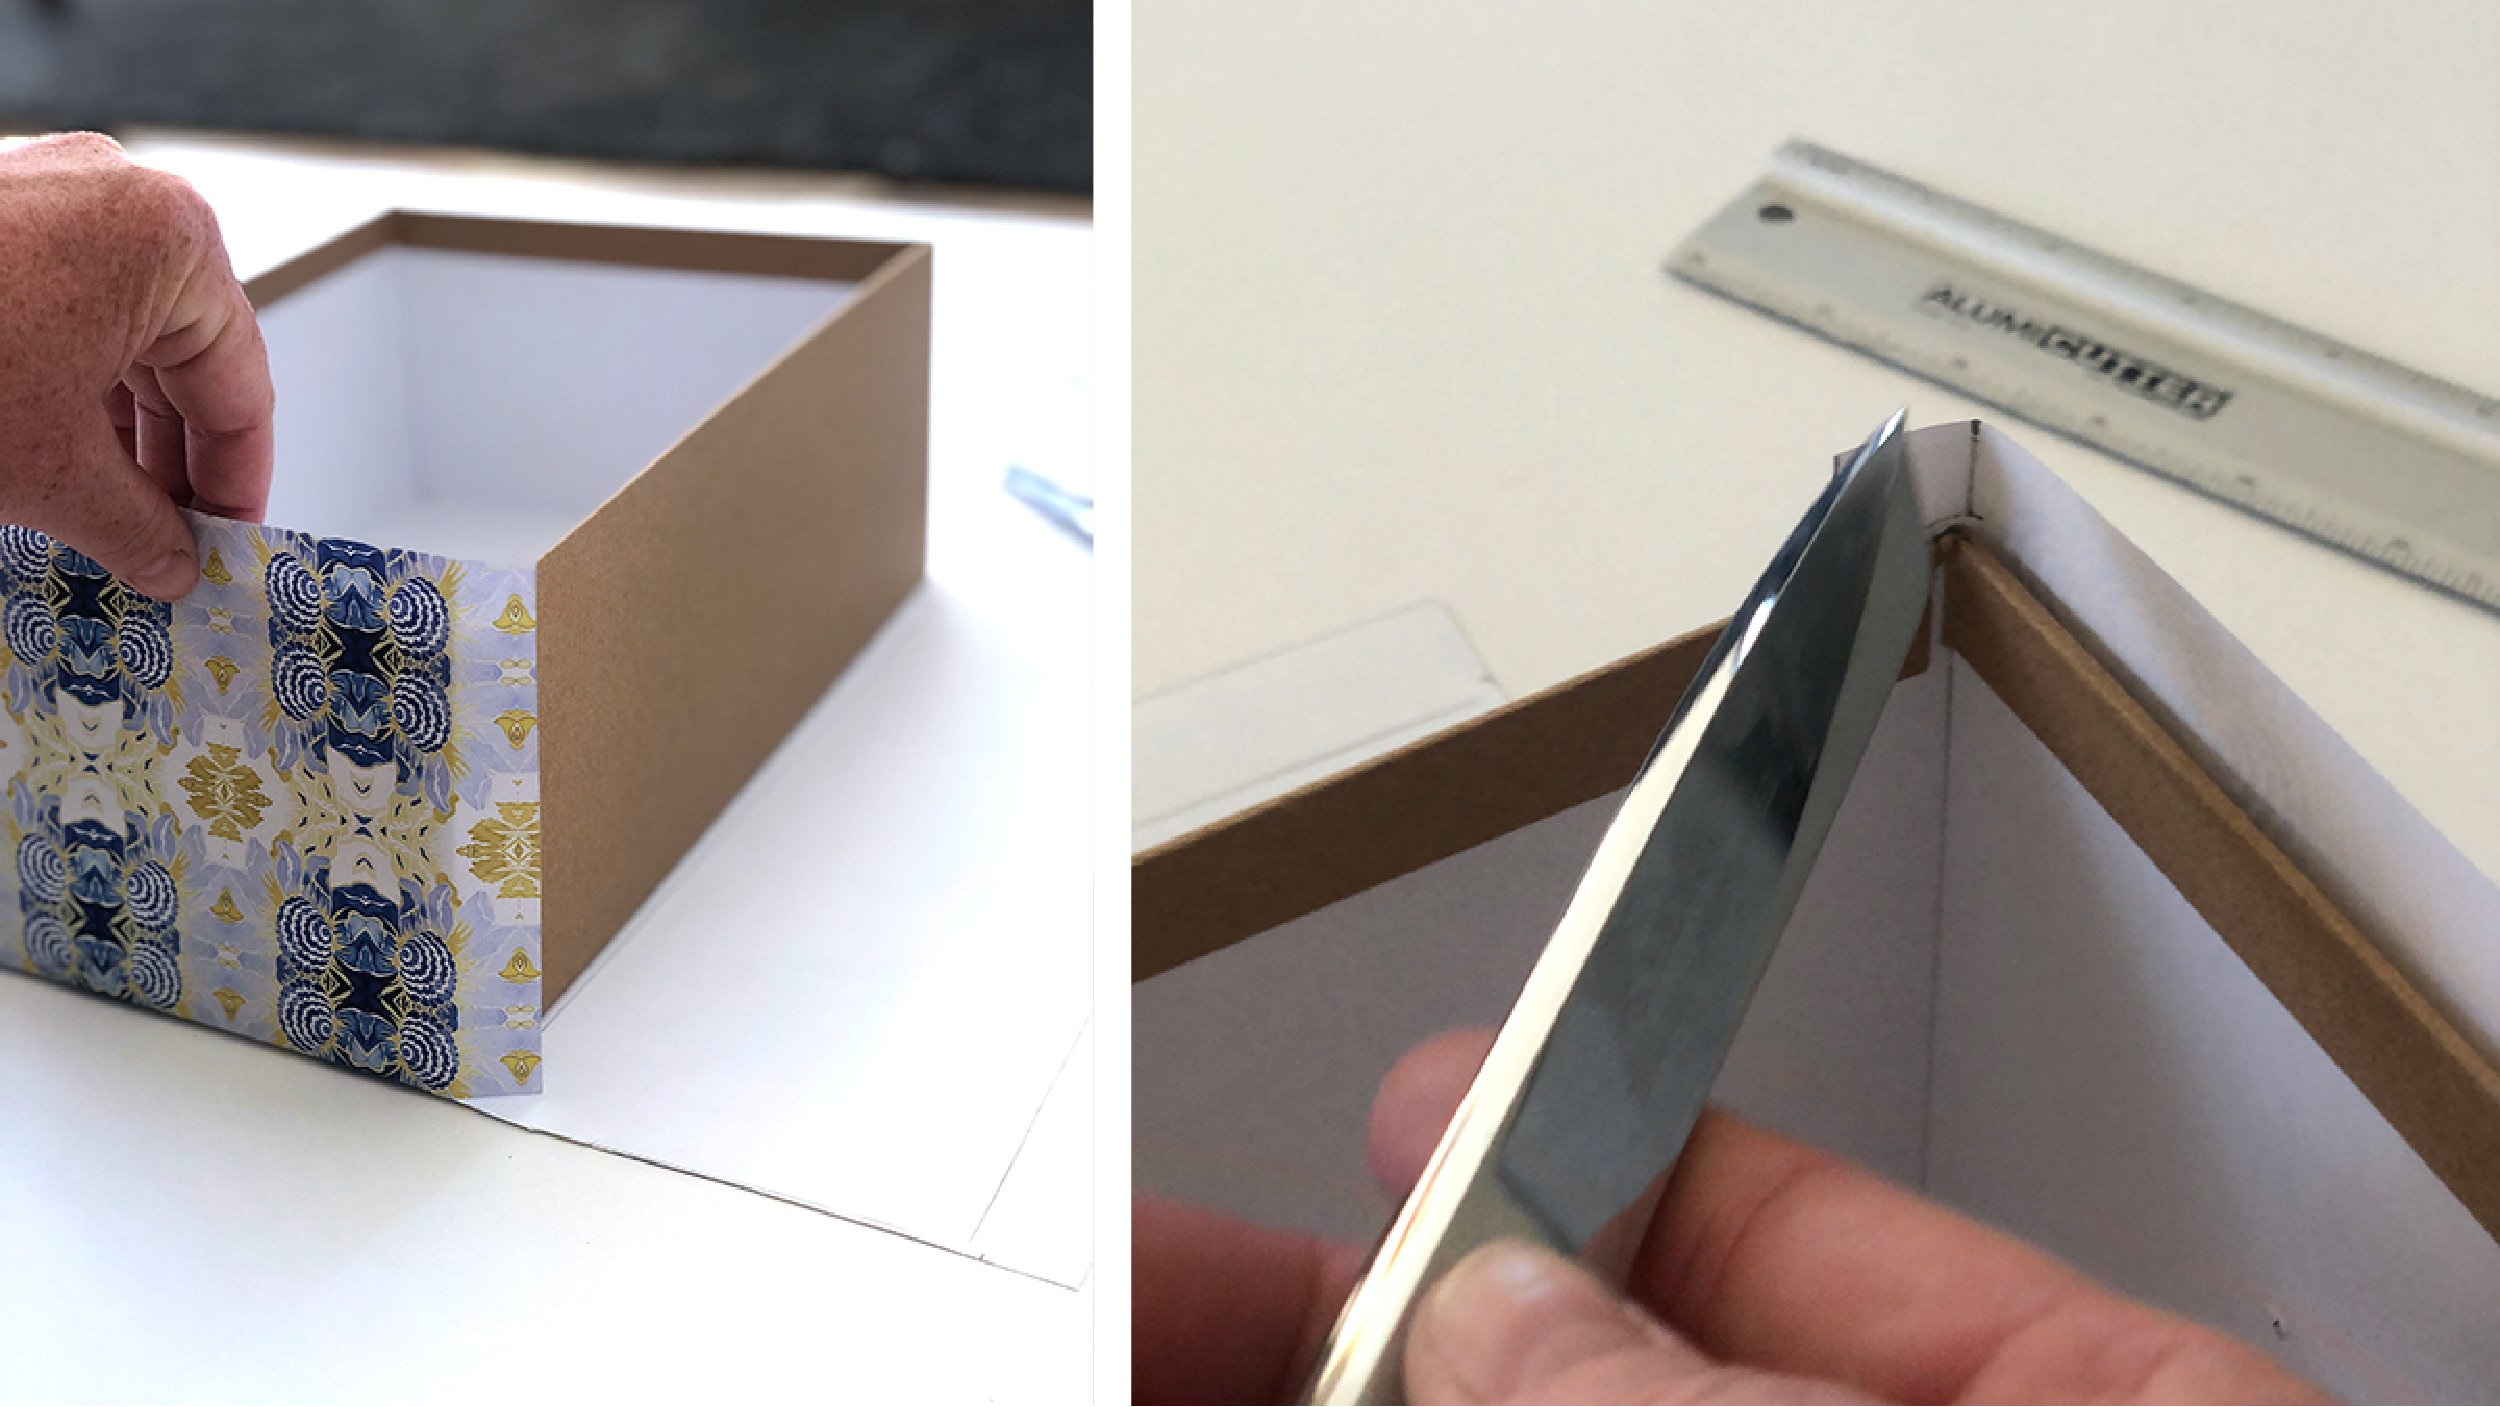 tutorial image on wrapping a telescoping gift box showing how to wrap around the edge of the box on two sides